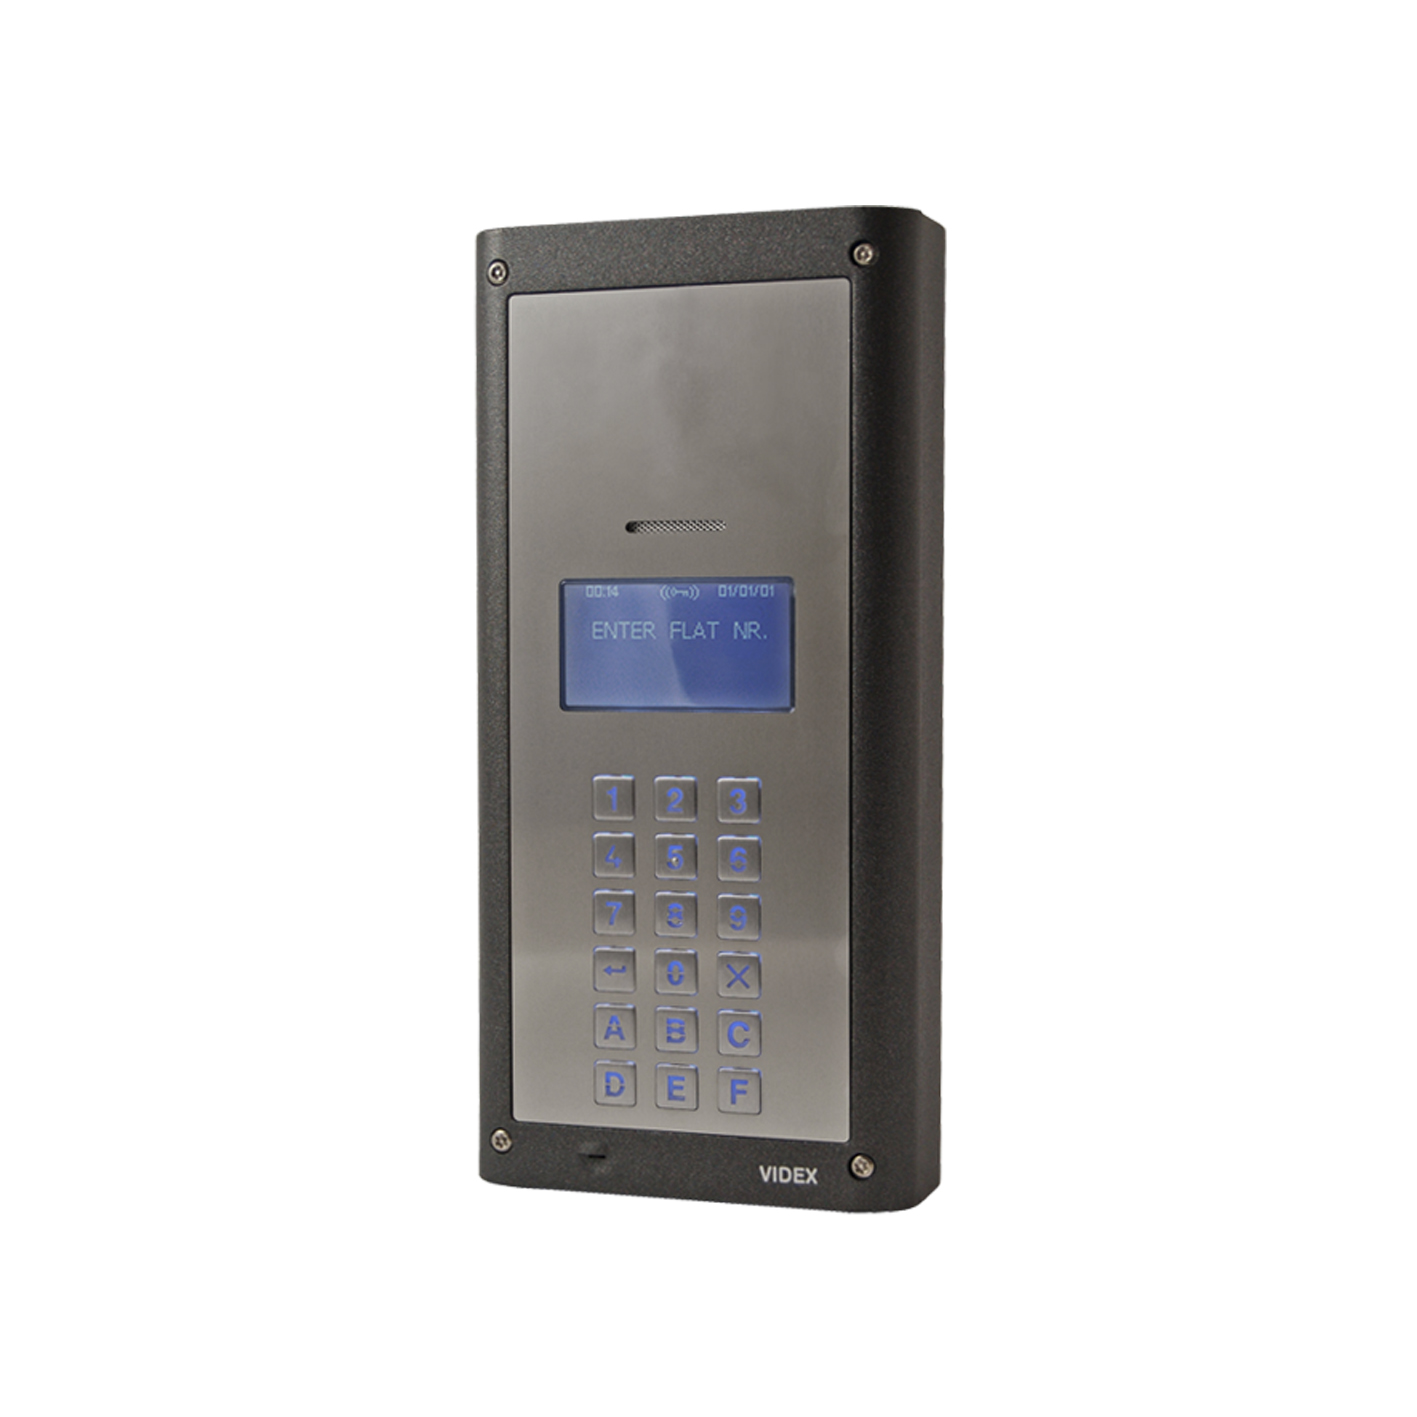 Vandal Resistant 4000 Series Digital Audio Panel with Alpha-numeric keypad